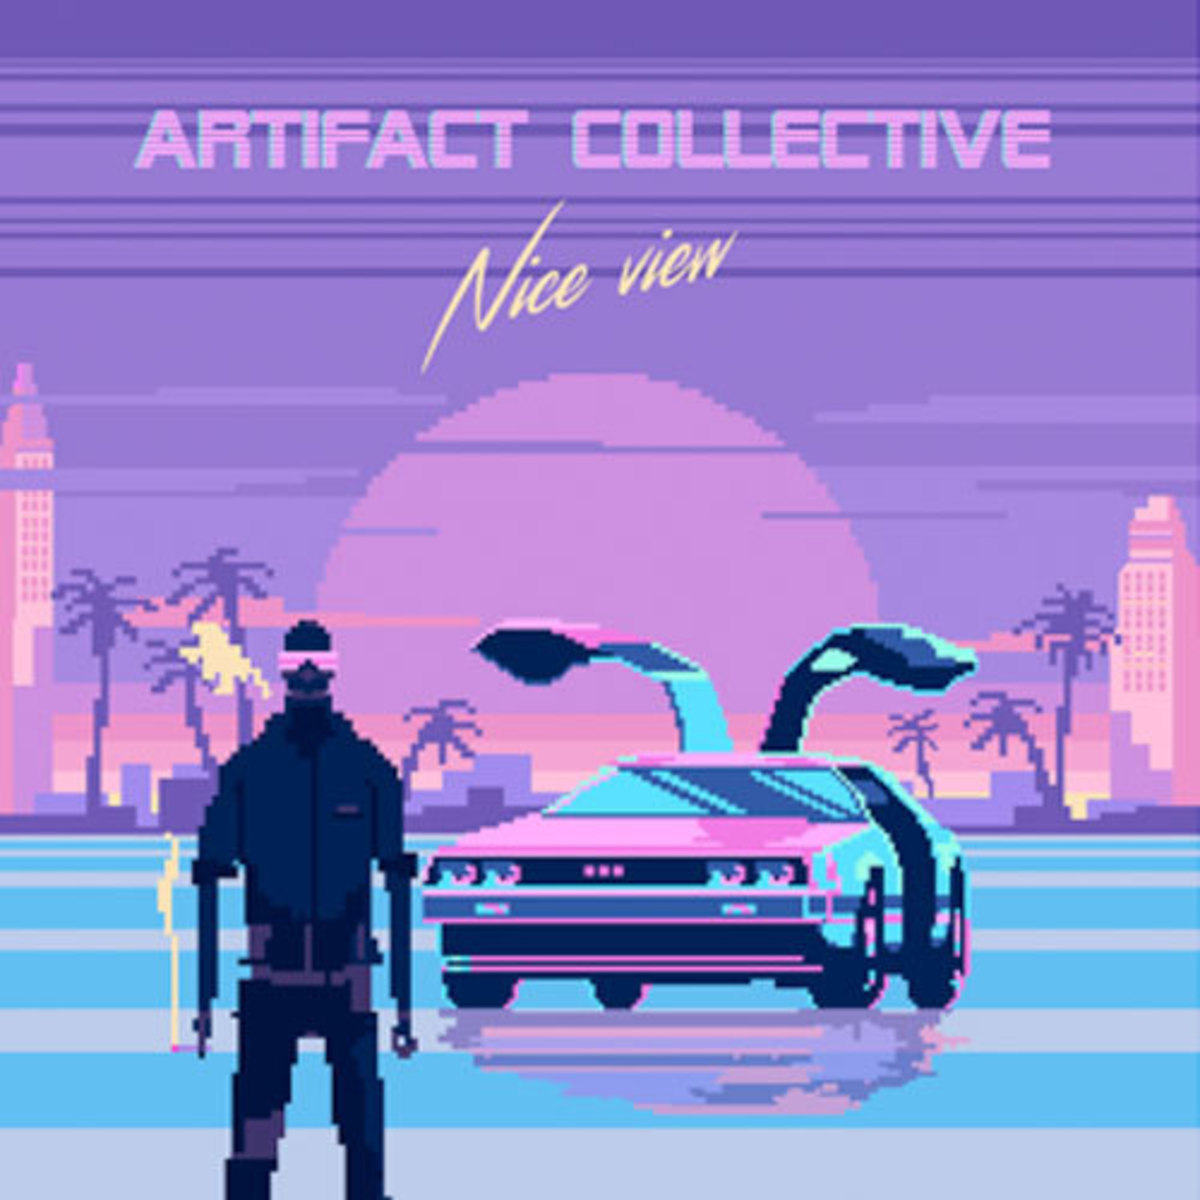 artifact-collective-nice-view.jpg